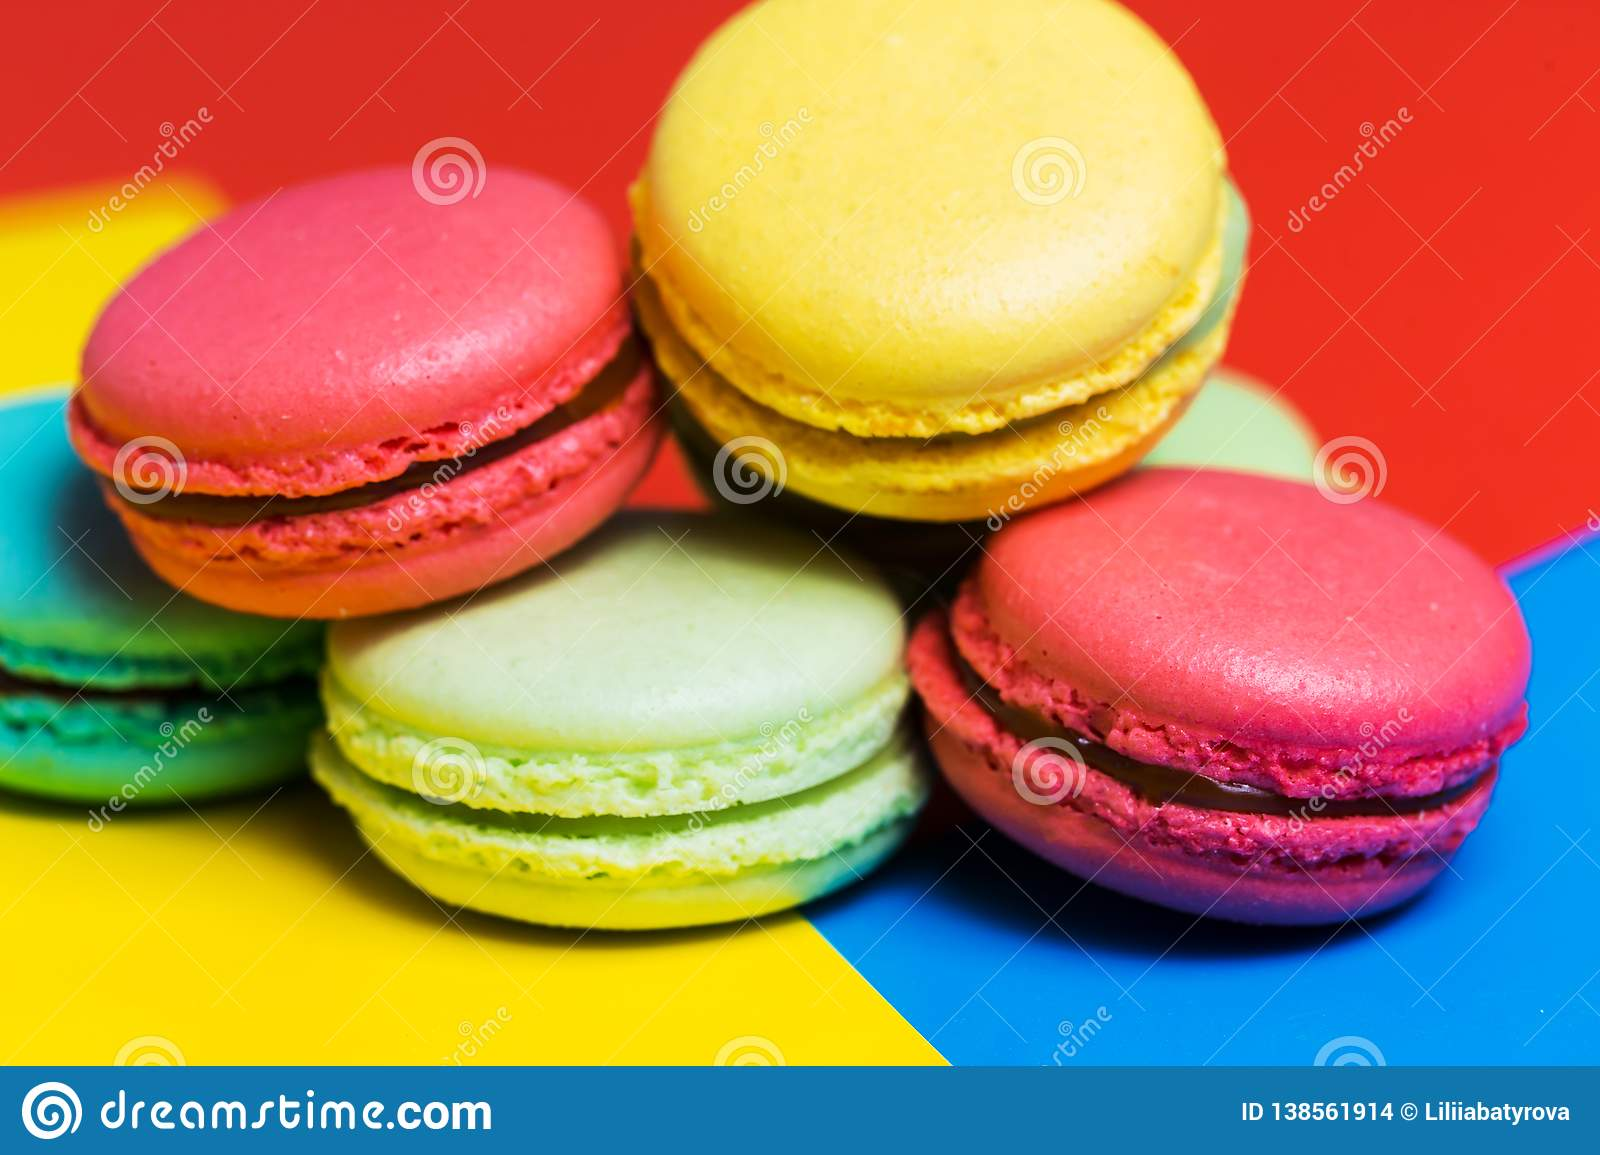 Colorful Macarons Cakes On A Blue Background Closeup Pink Yellow Green French Dessert Stock Photo Image Of French Bake 138561914